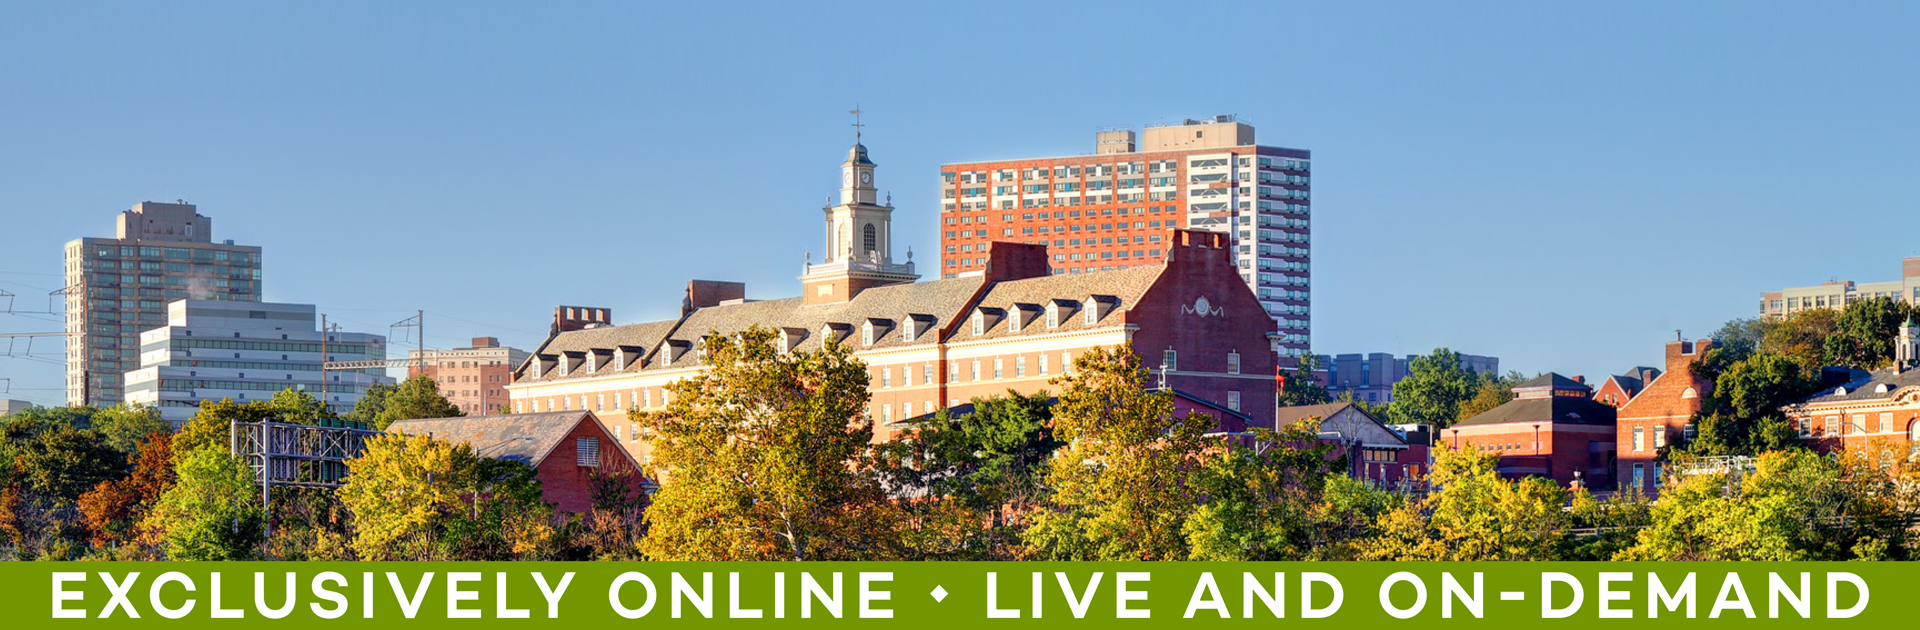 SCUP 2020 Mid-Atlantic Conference - Exclusively Online